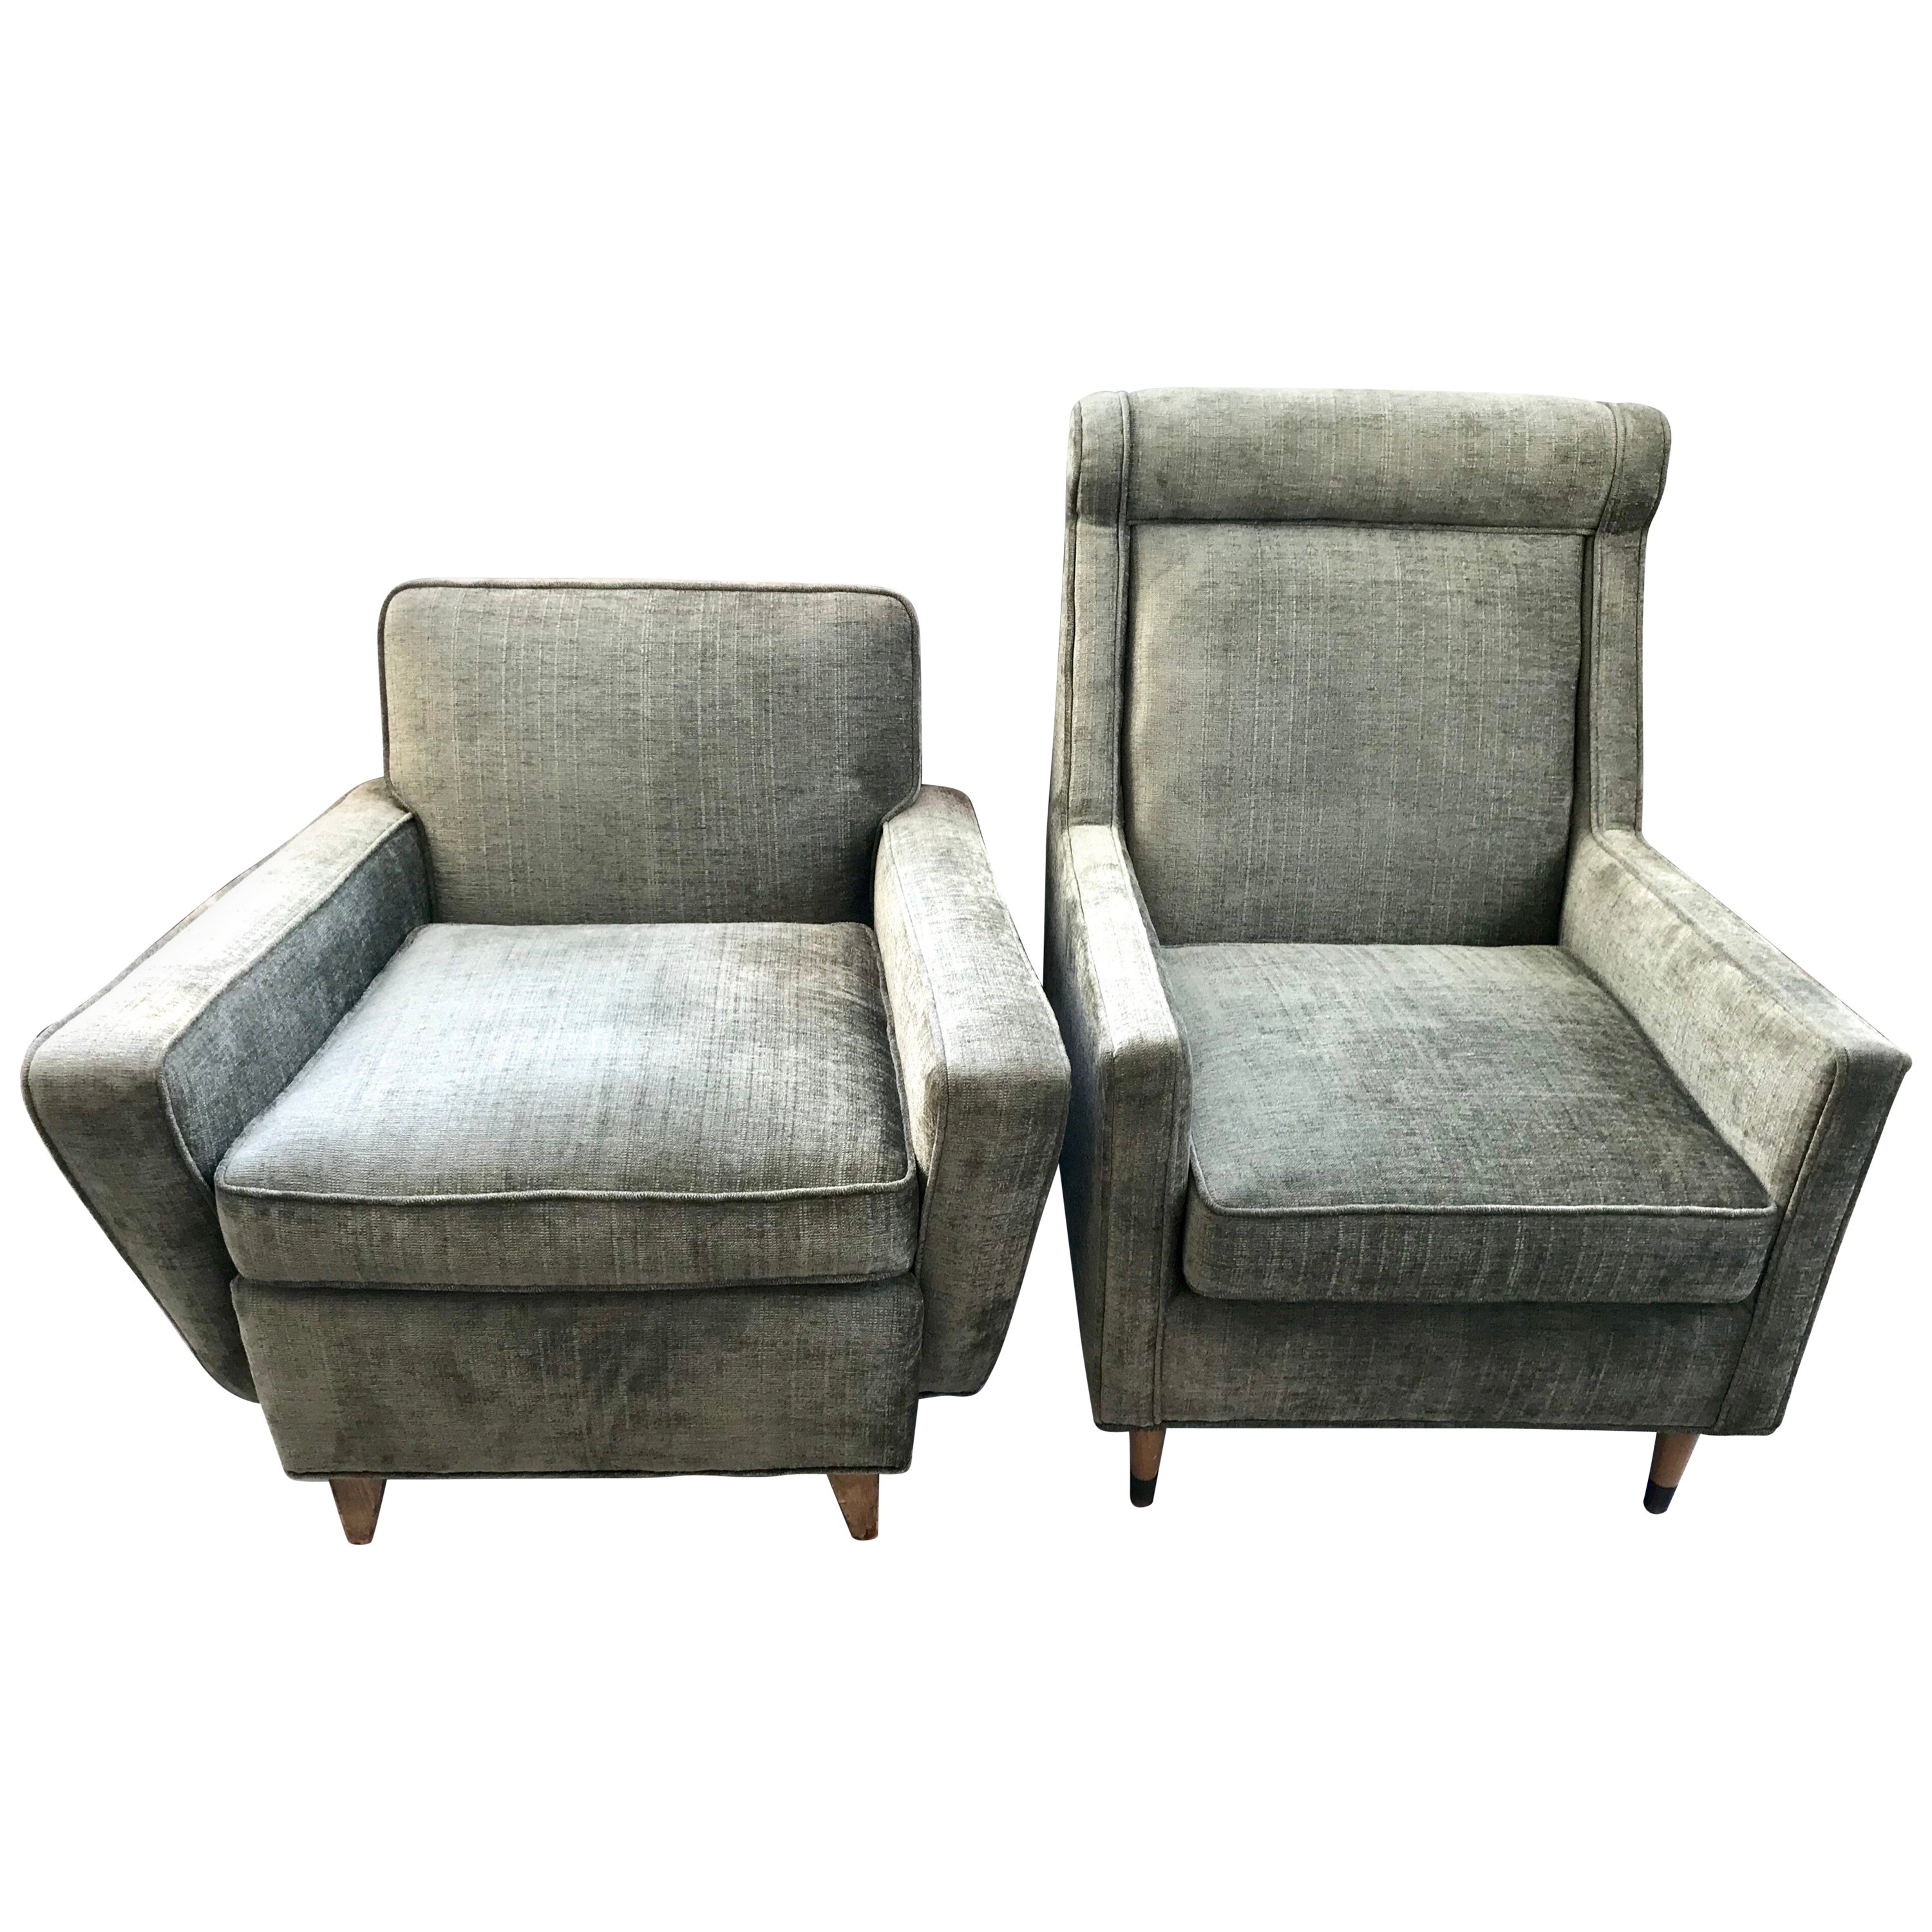 Pair of Mid-Century Modern His and Hers Olive Velveteen Danish Lounge Chairs